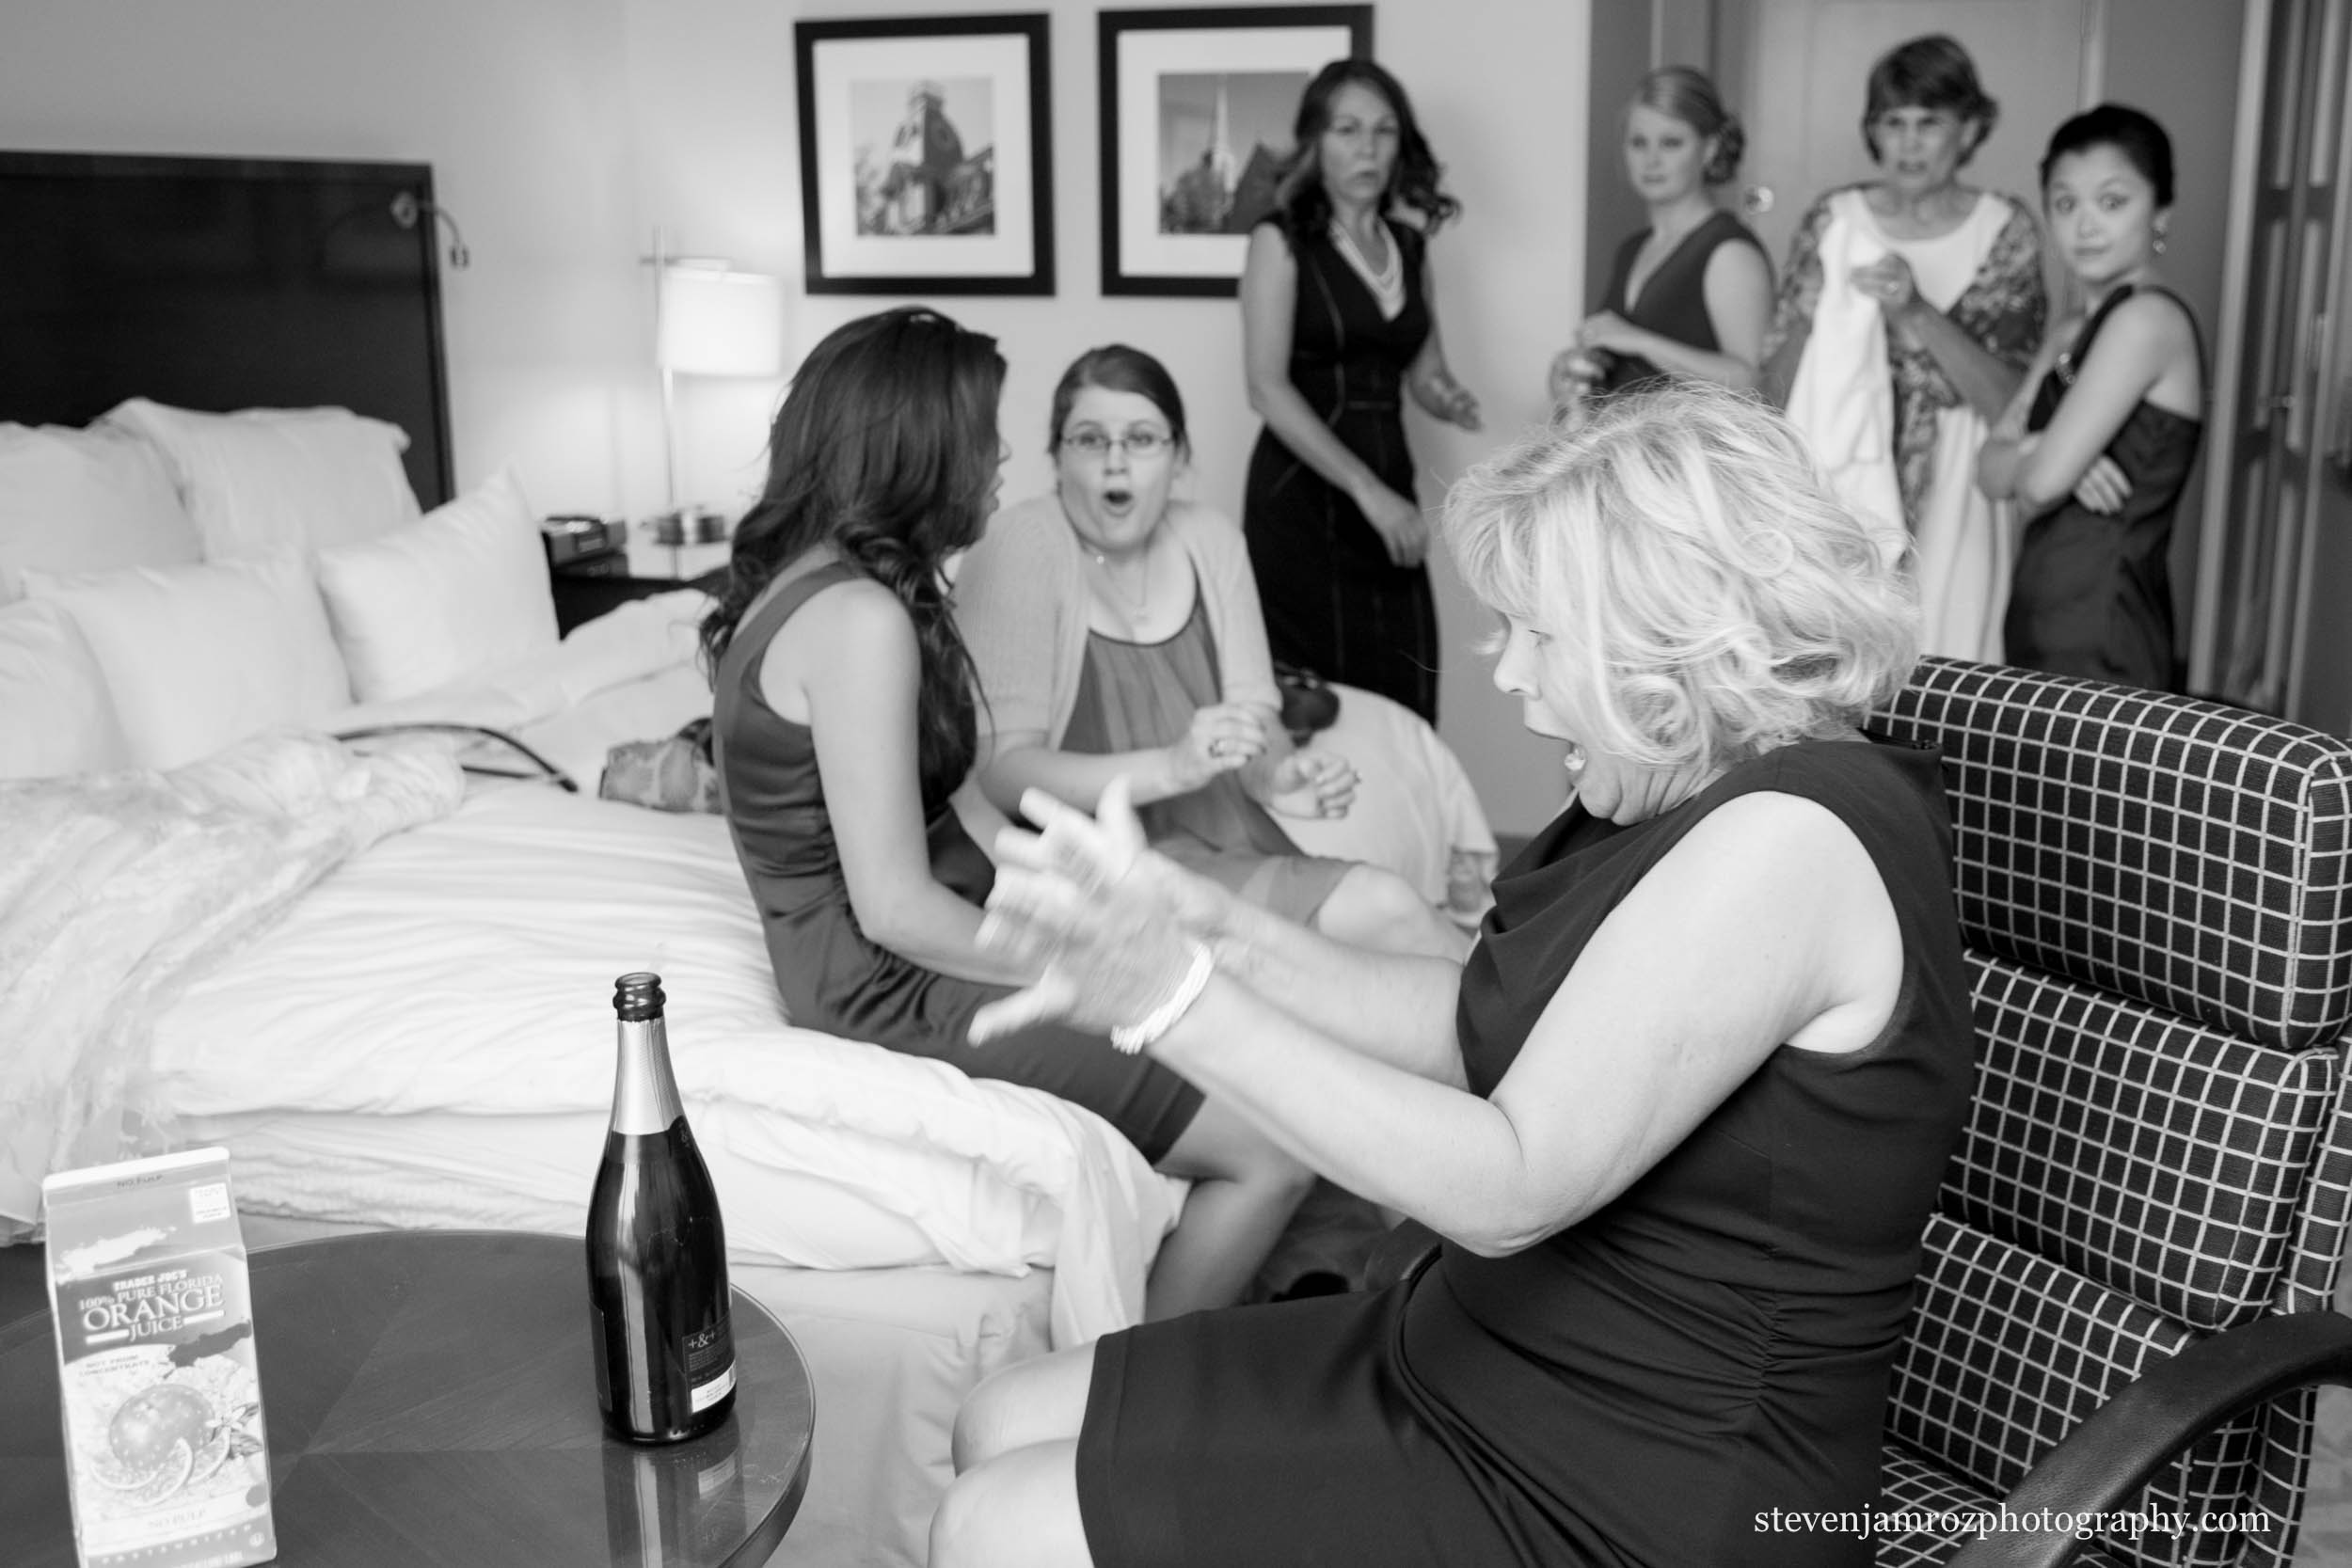 the-stockroom-wedding-raleigh-steven-jamroz-photography-0414.jpg